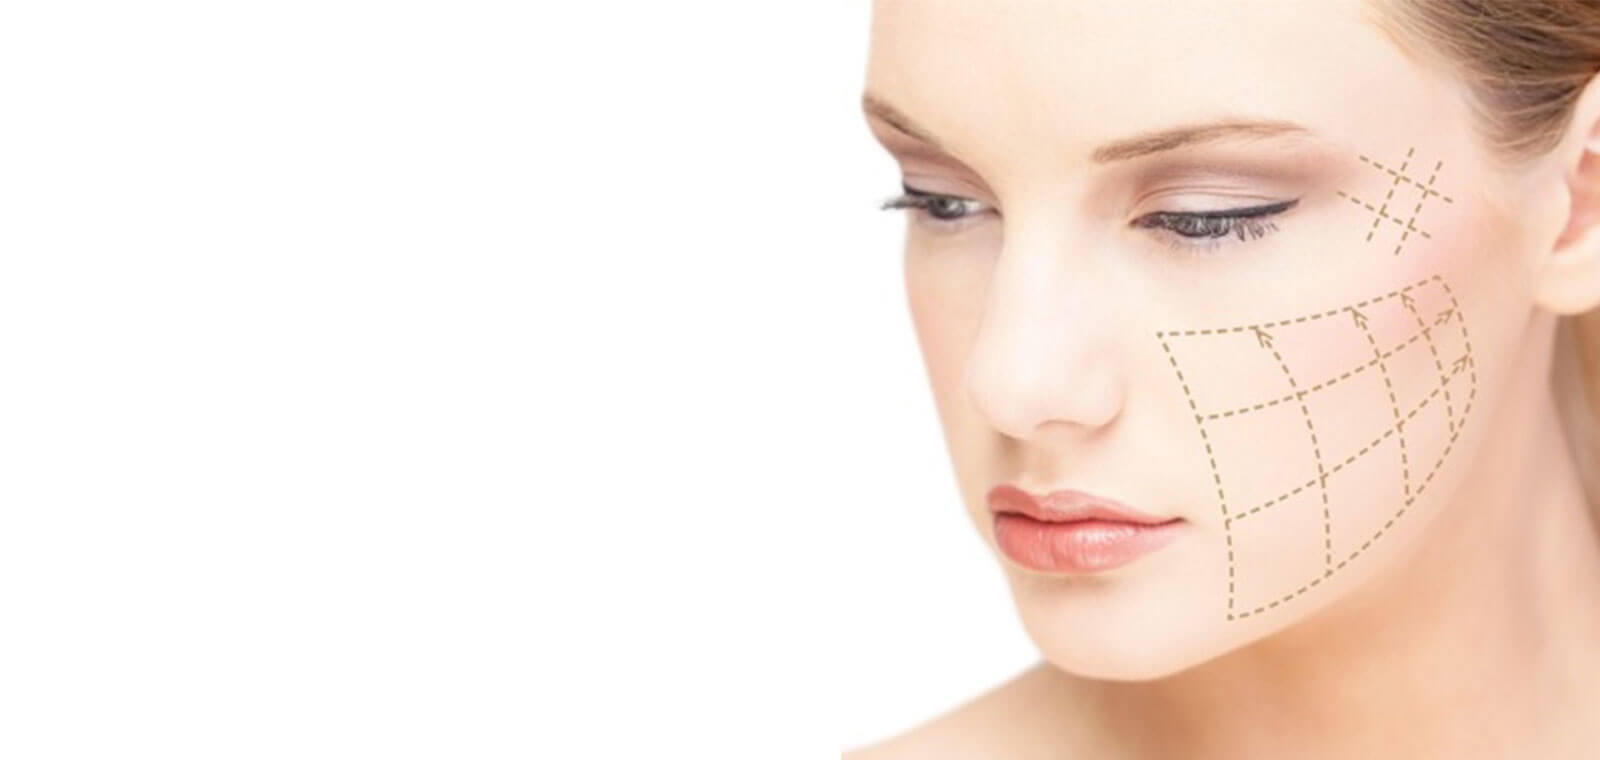 Injectable lifting with yarns is a safe method which gives lifting results to loosened tissues avoiding surgery.